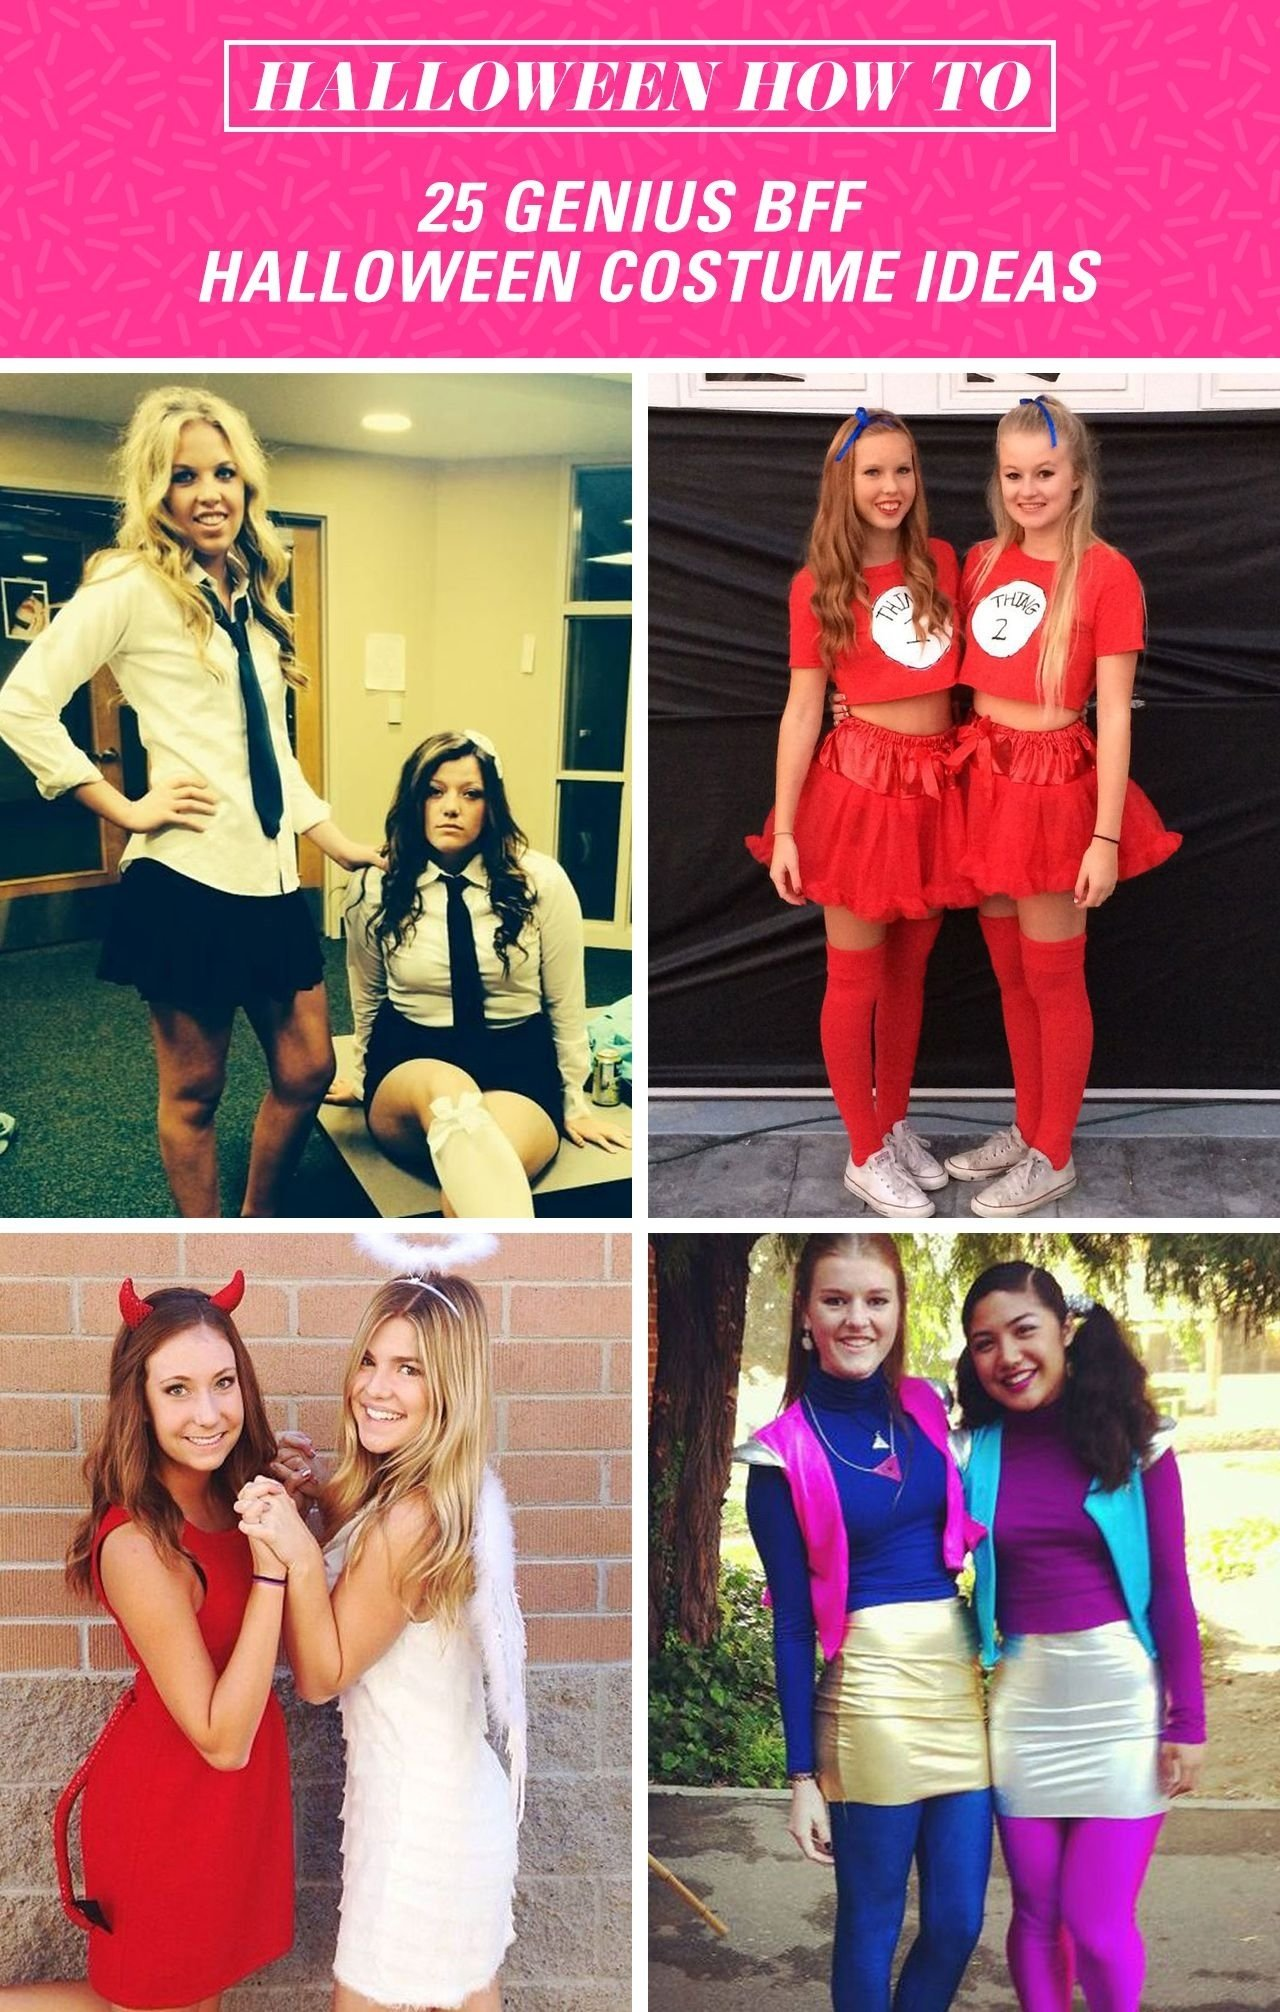 10 Trendy Halloween Costume Ideas For Two Girls 24 genius bff halloween costume ideas you need  sc 1 st  Unique Ideas 2018 & 10 Trendy Halloween Costume Ideas For Two Girls